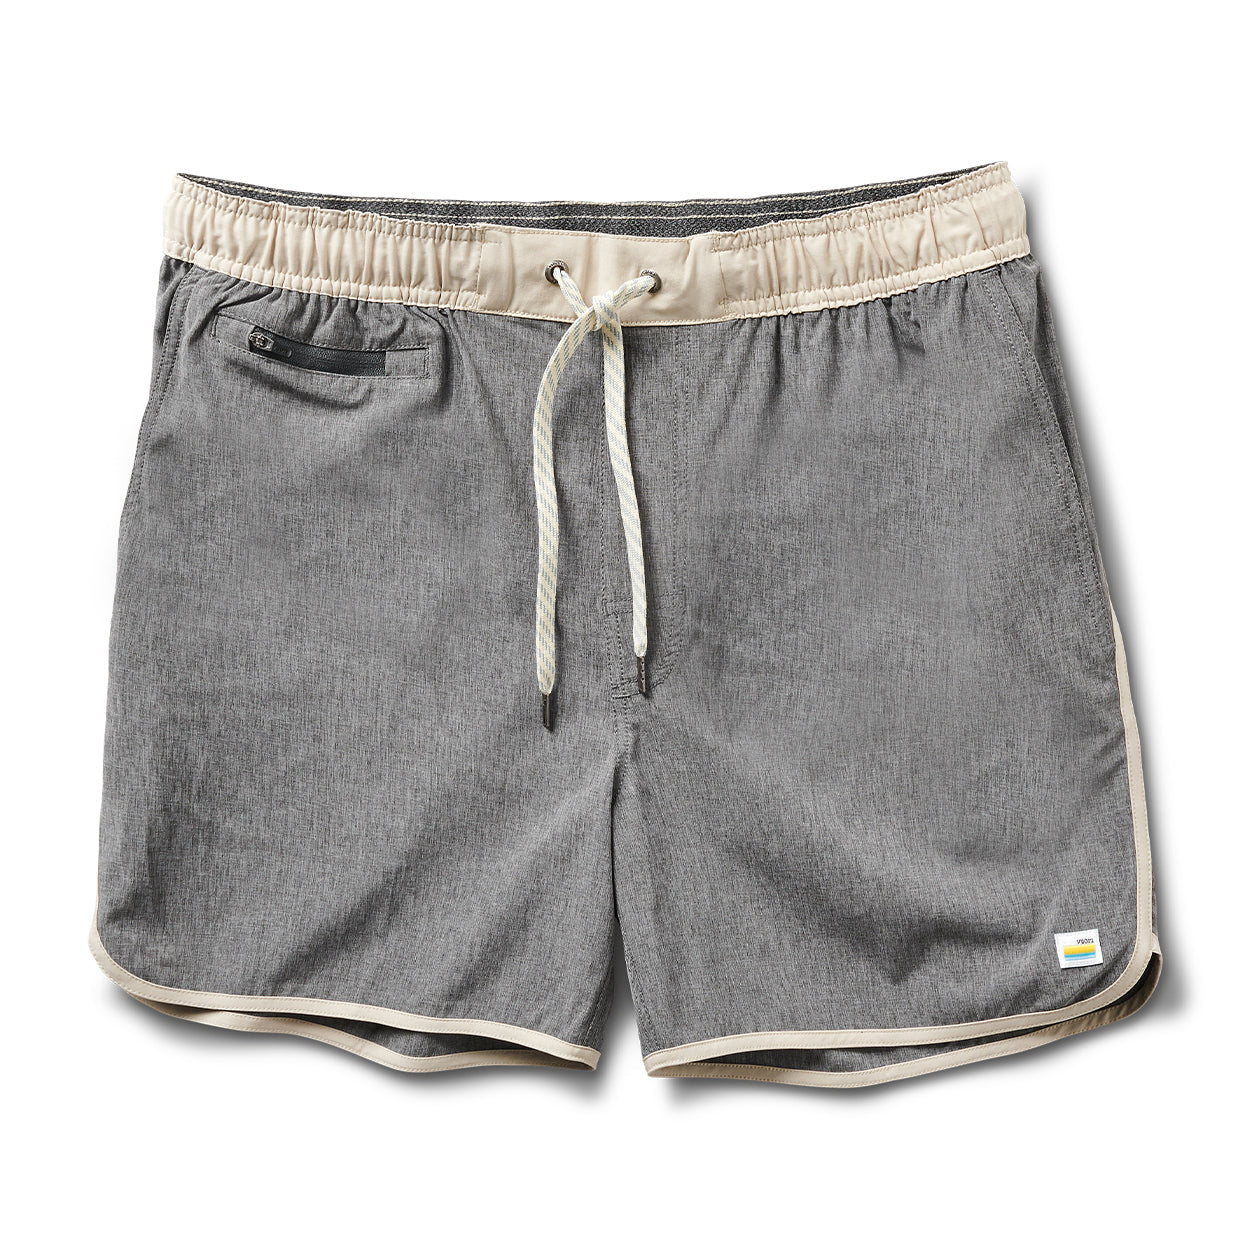 Banks Short 5"